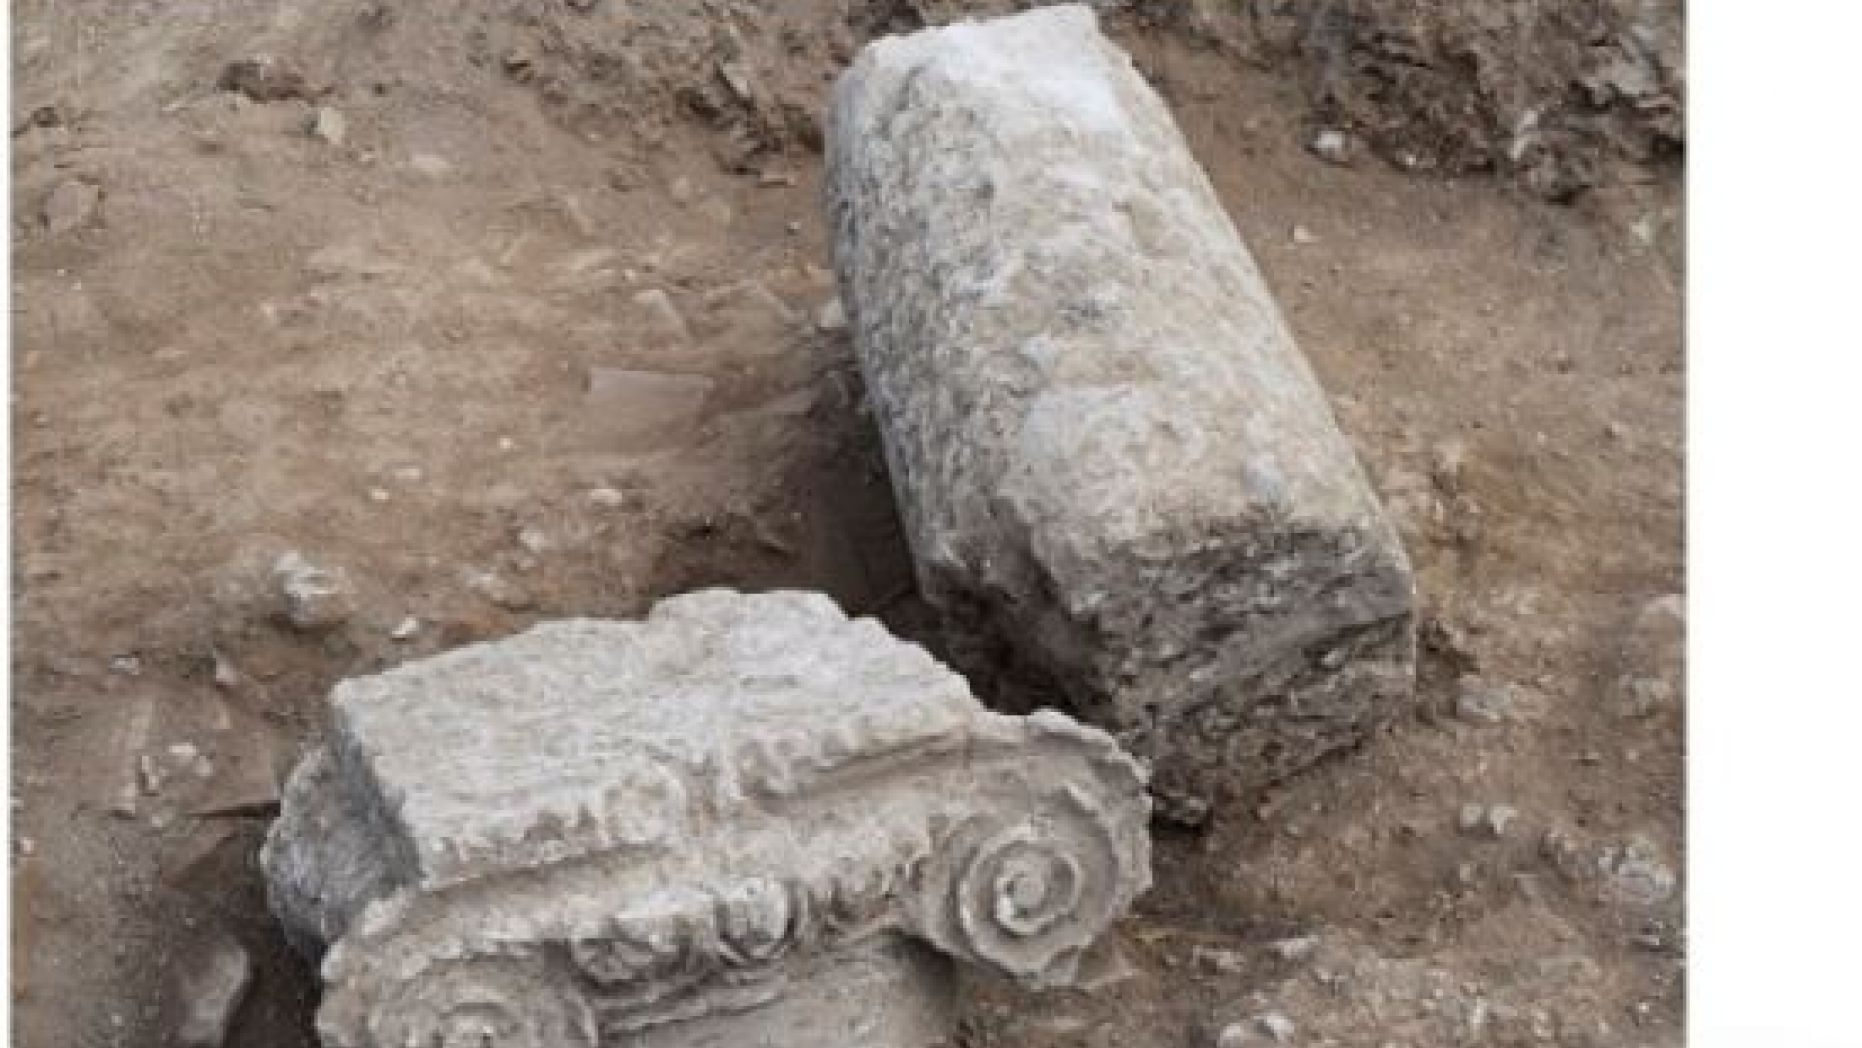 Fox News: Huge ancient baths unearthed in Greece's lost city of Tenea